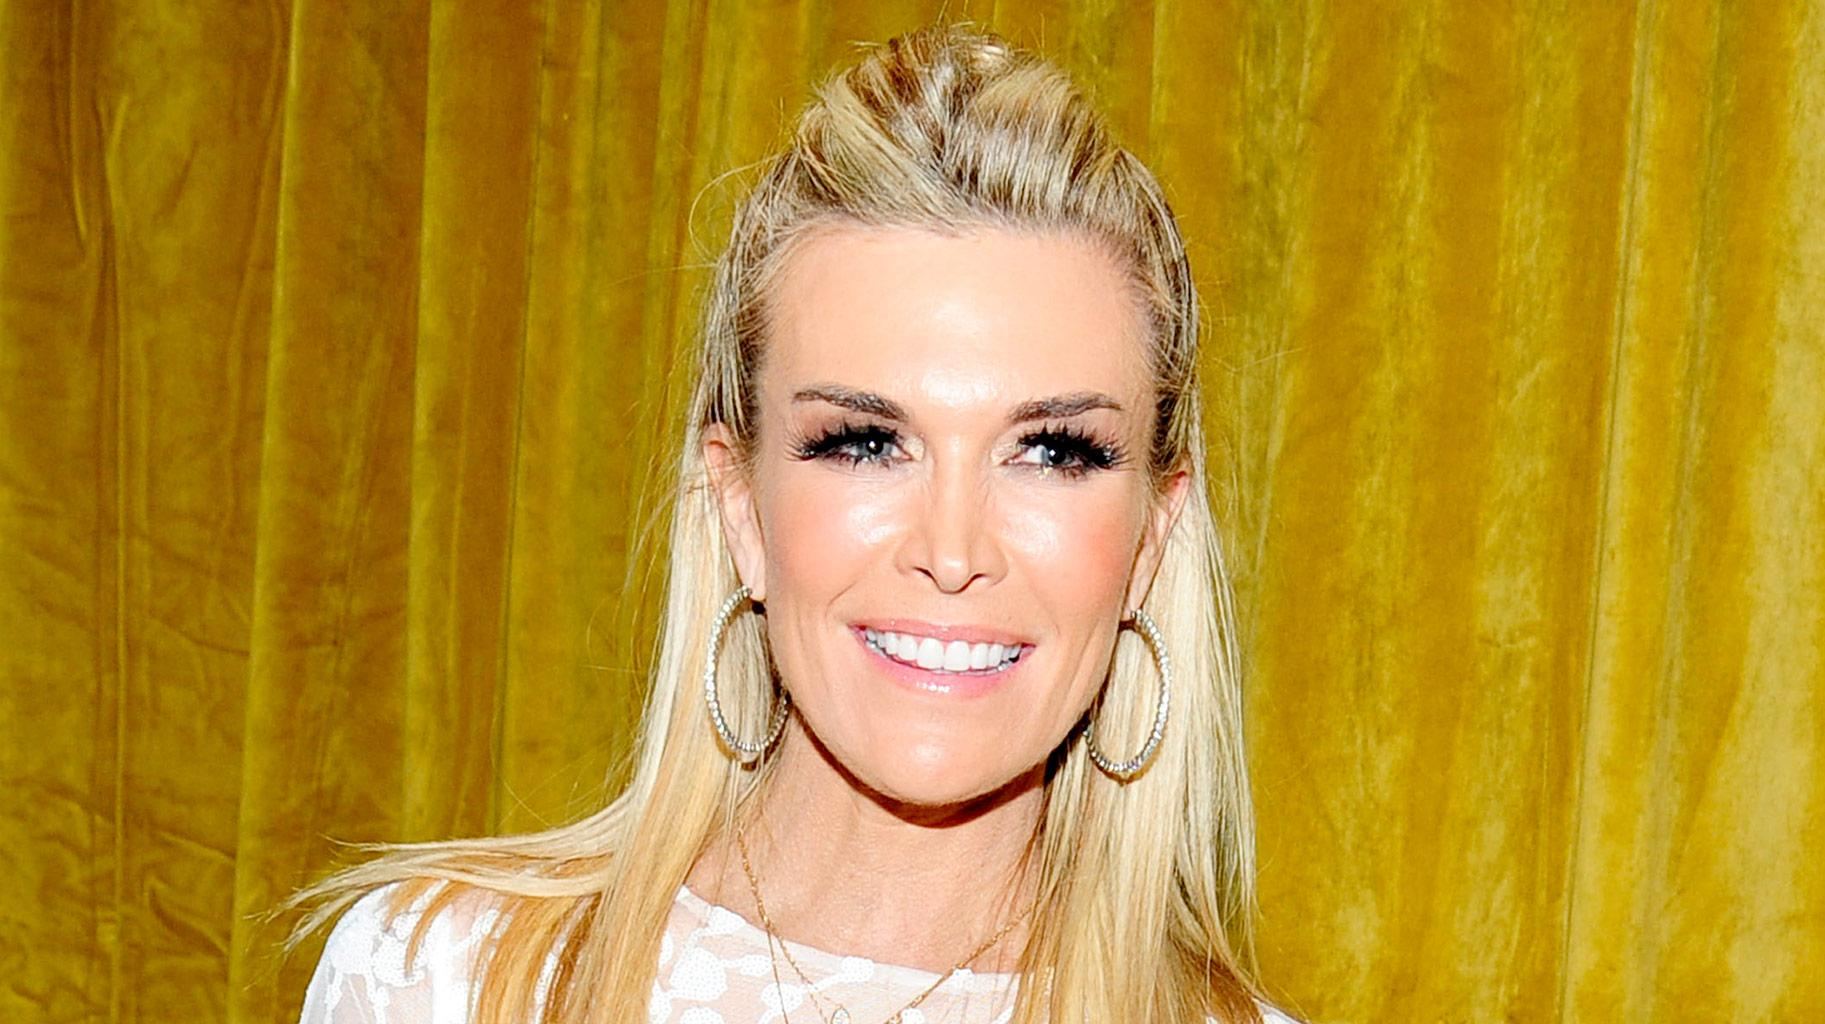 Tinsley Mortimer Looks Back On Her Time On RHONY And Living In Chicago After Quitting Real Housewives Franchise